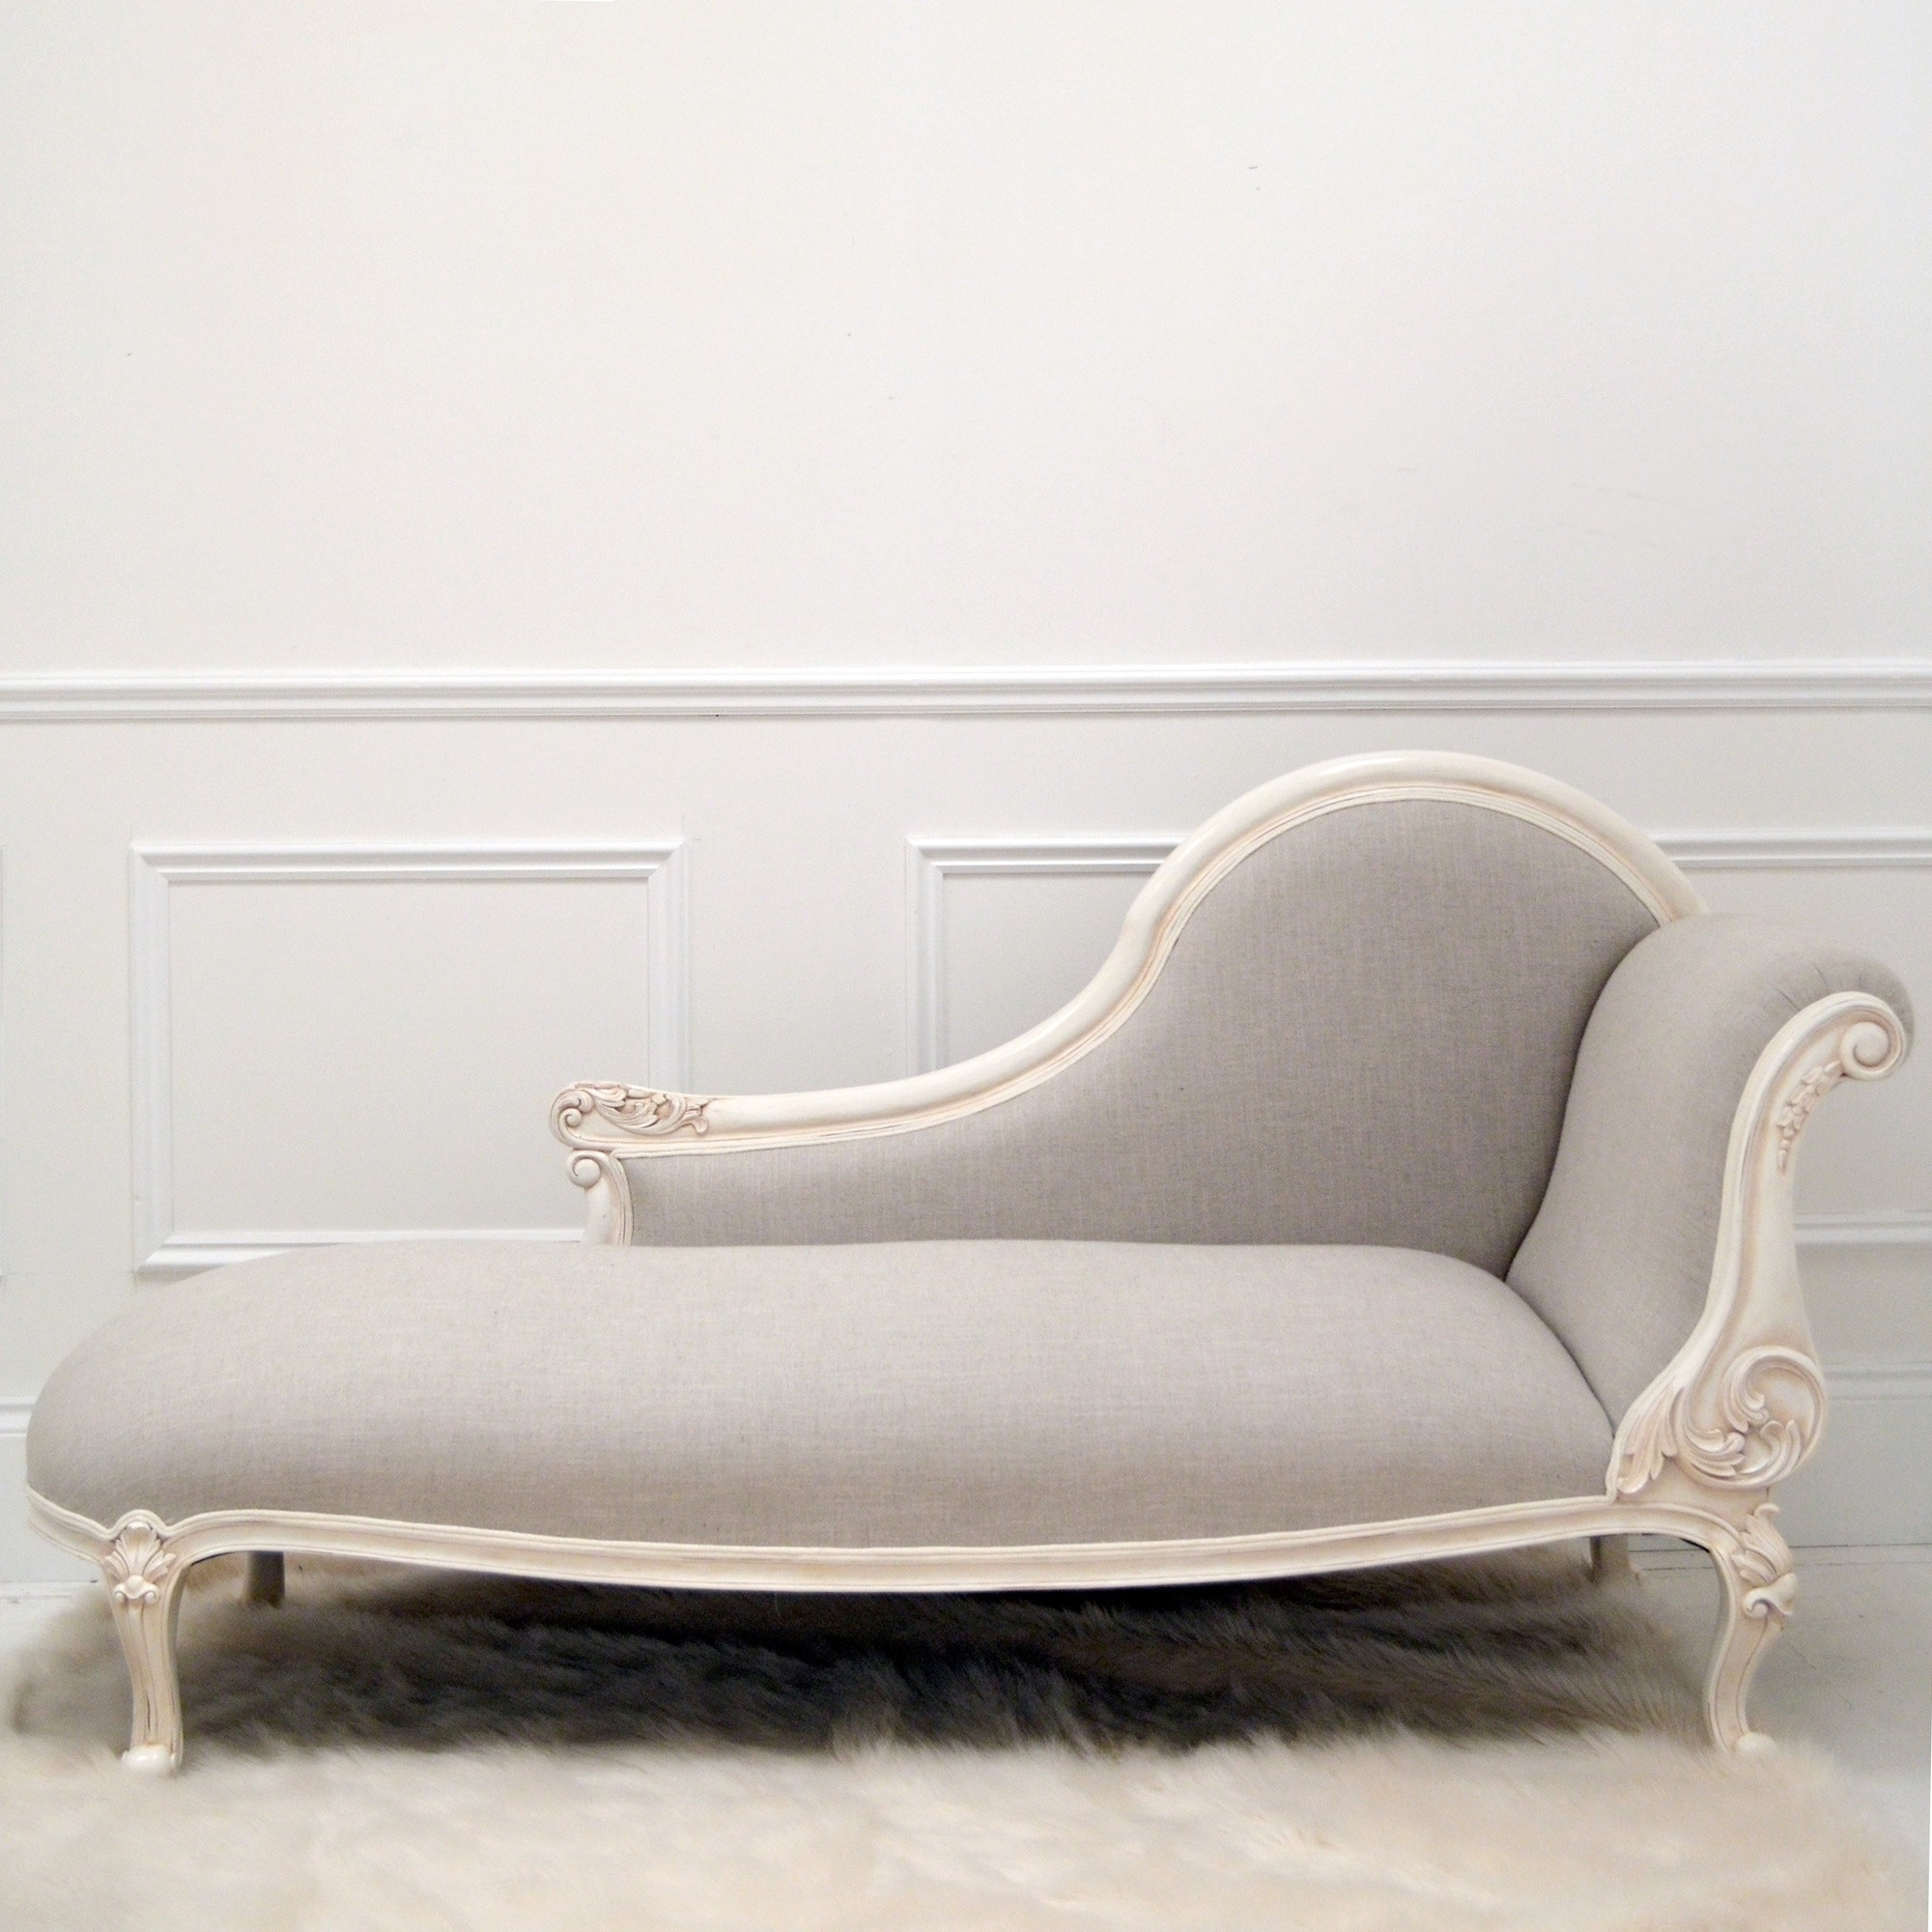 Best And Newest Chaise Lounge For Teens Modern Bedroom Chairs Wayfair Ikea 2017 With Emily Chaise Lounges (View 10 of 15)